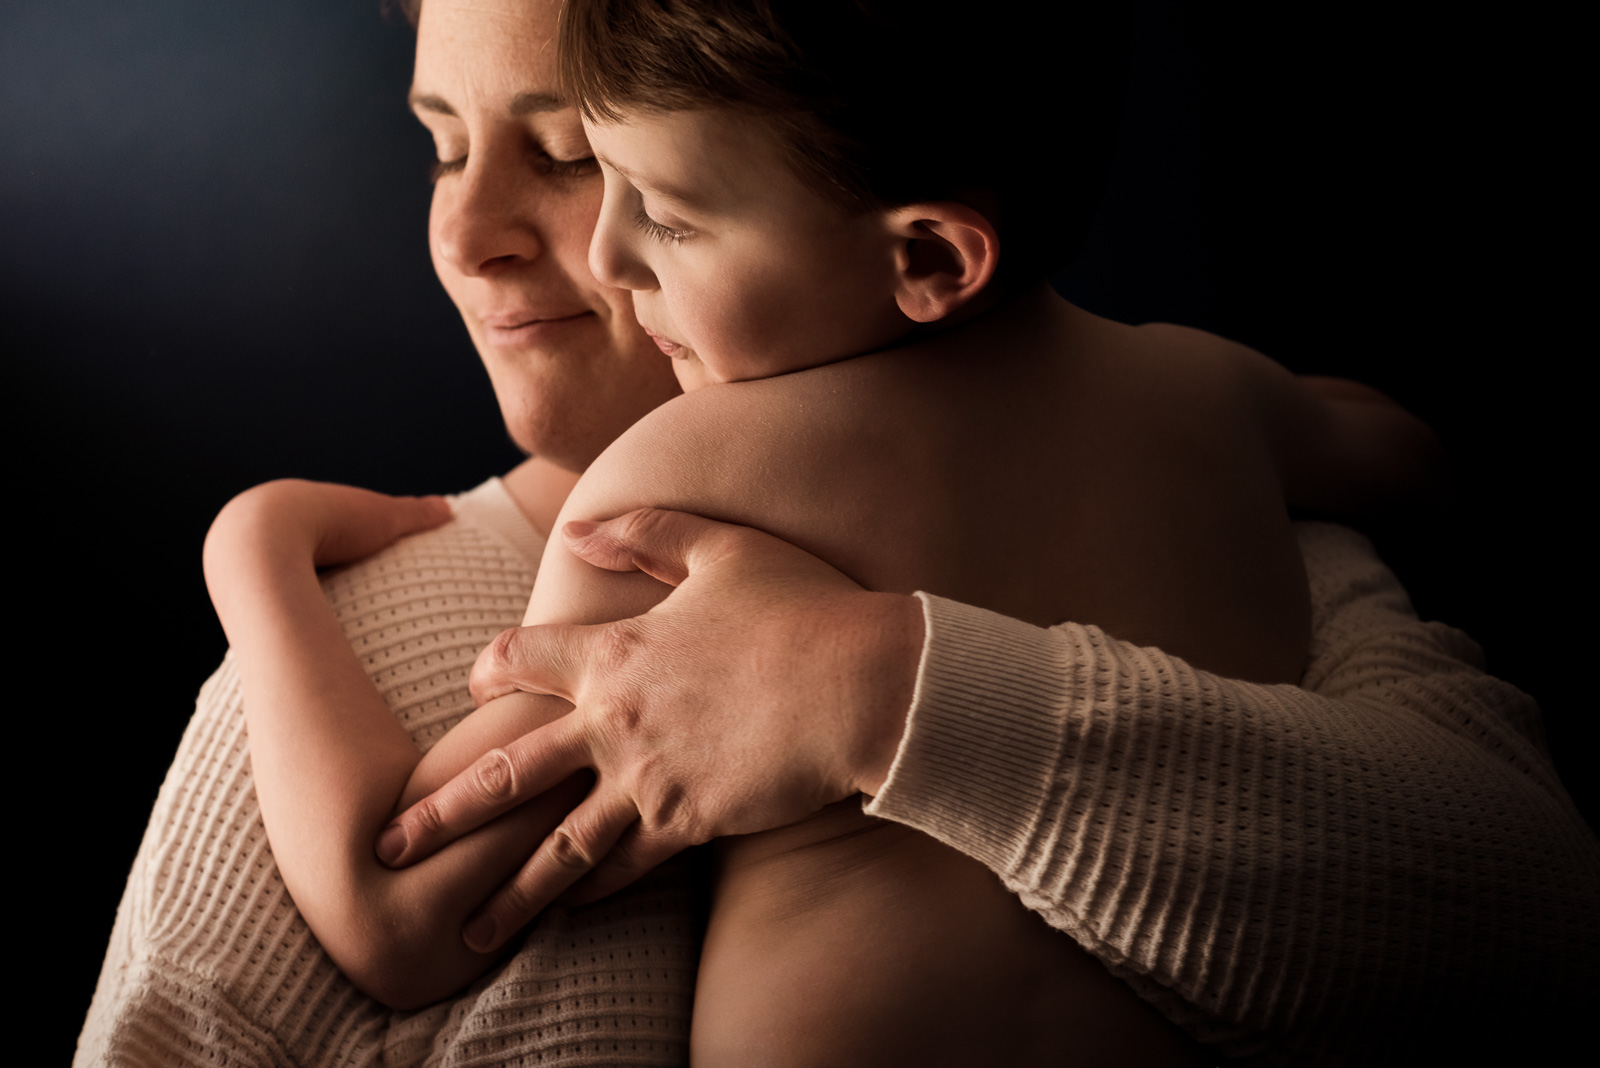 Photographing struggle - autistic child photographed with mom